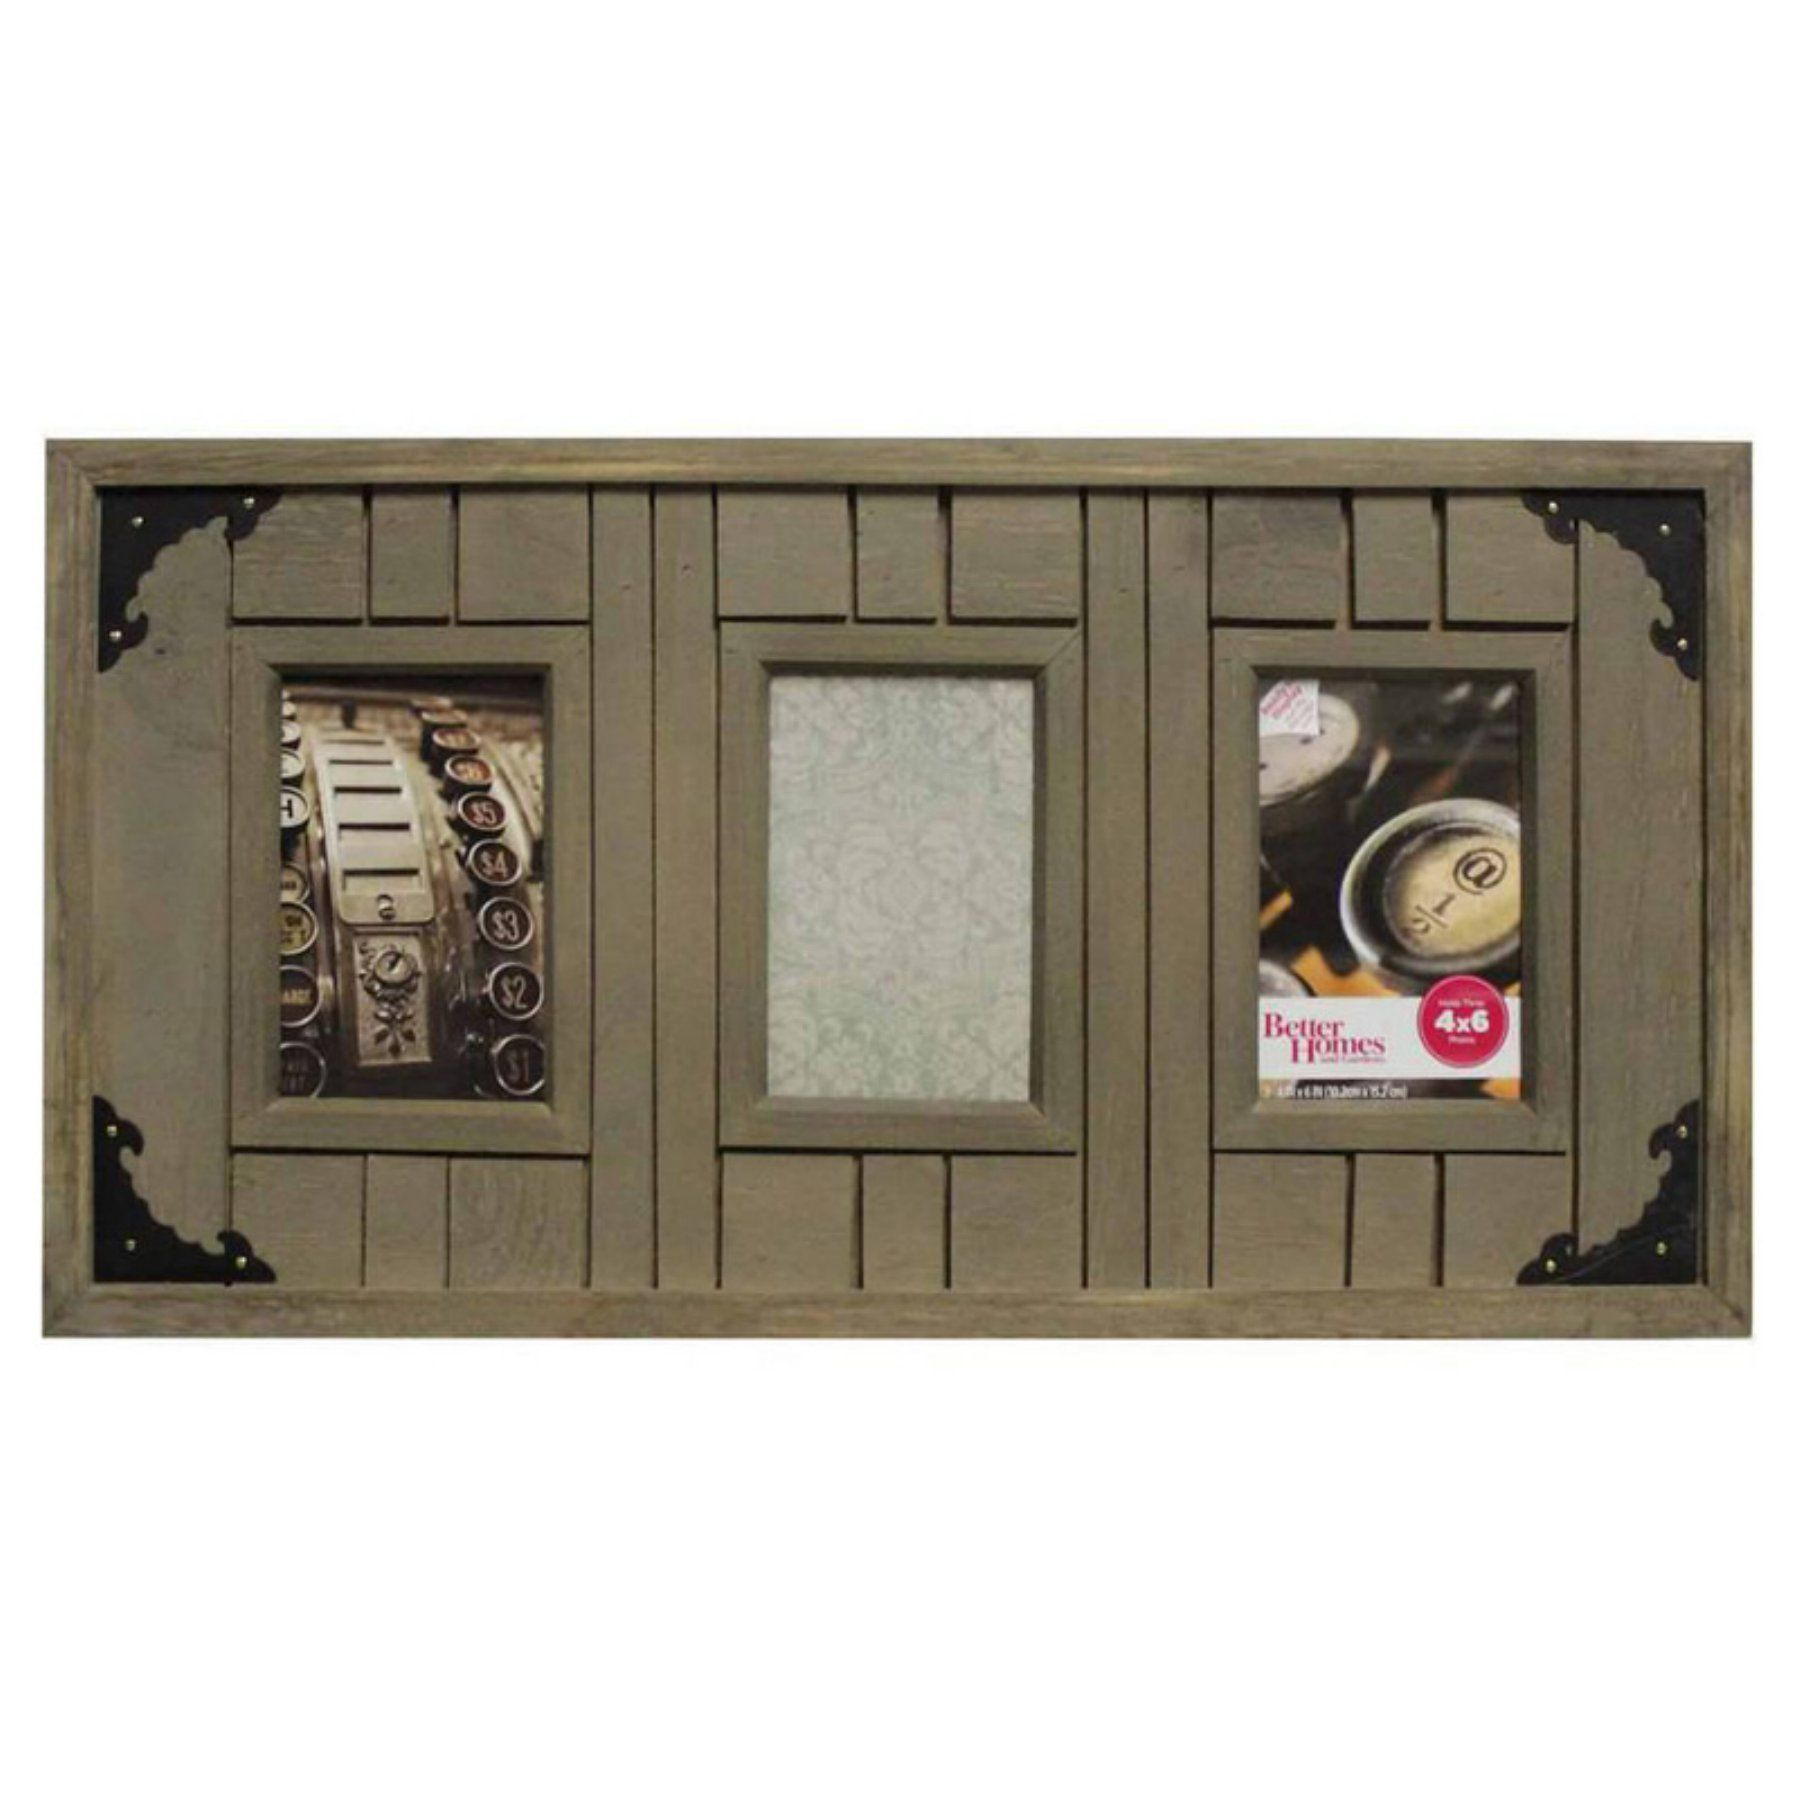 Better homes and gardens 3 opening driftwood plank collage frame better homes and gardens 3 opening driftwood plank collage frame 12eaa6b2c905467d8b00f3c4cd10d228 jeuxipadfo Choice Image